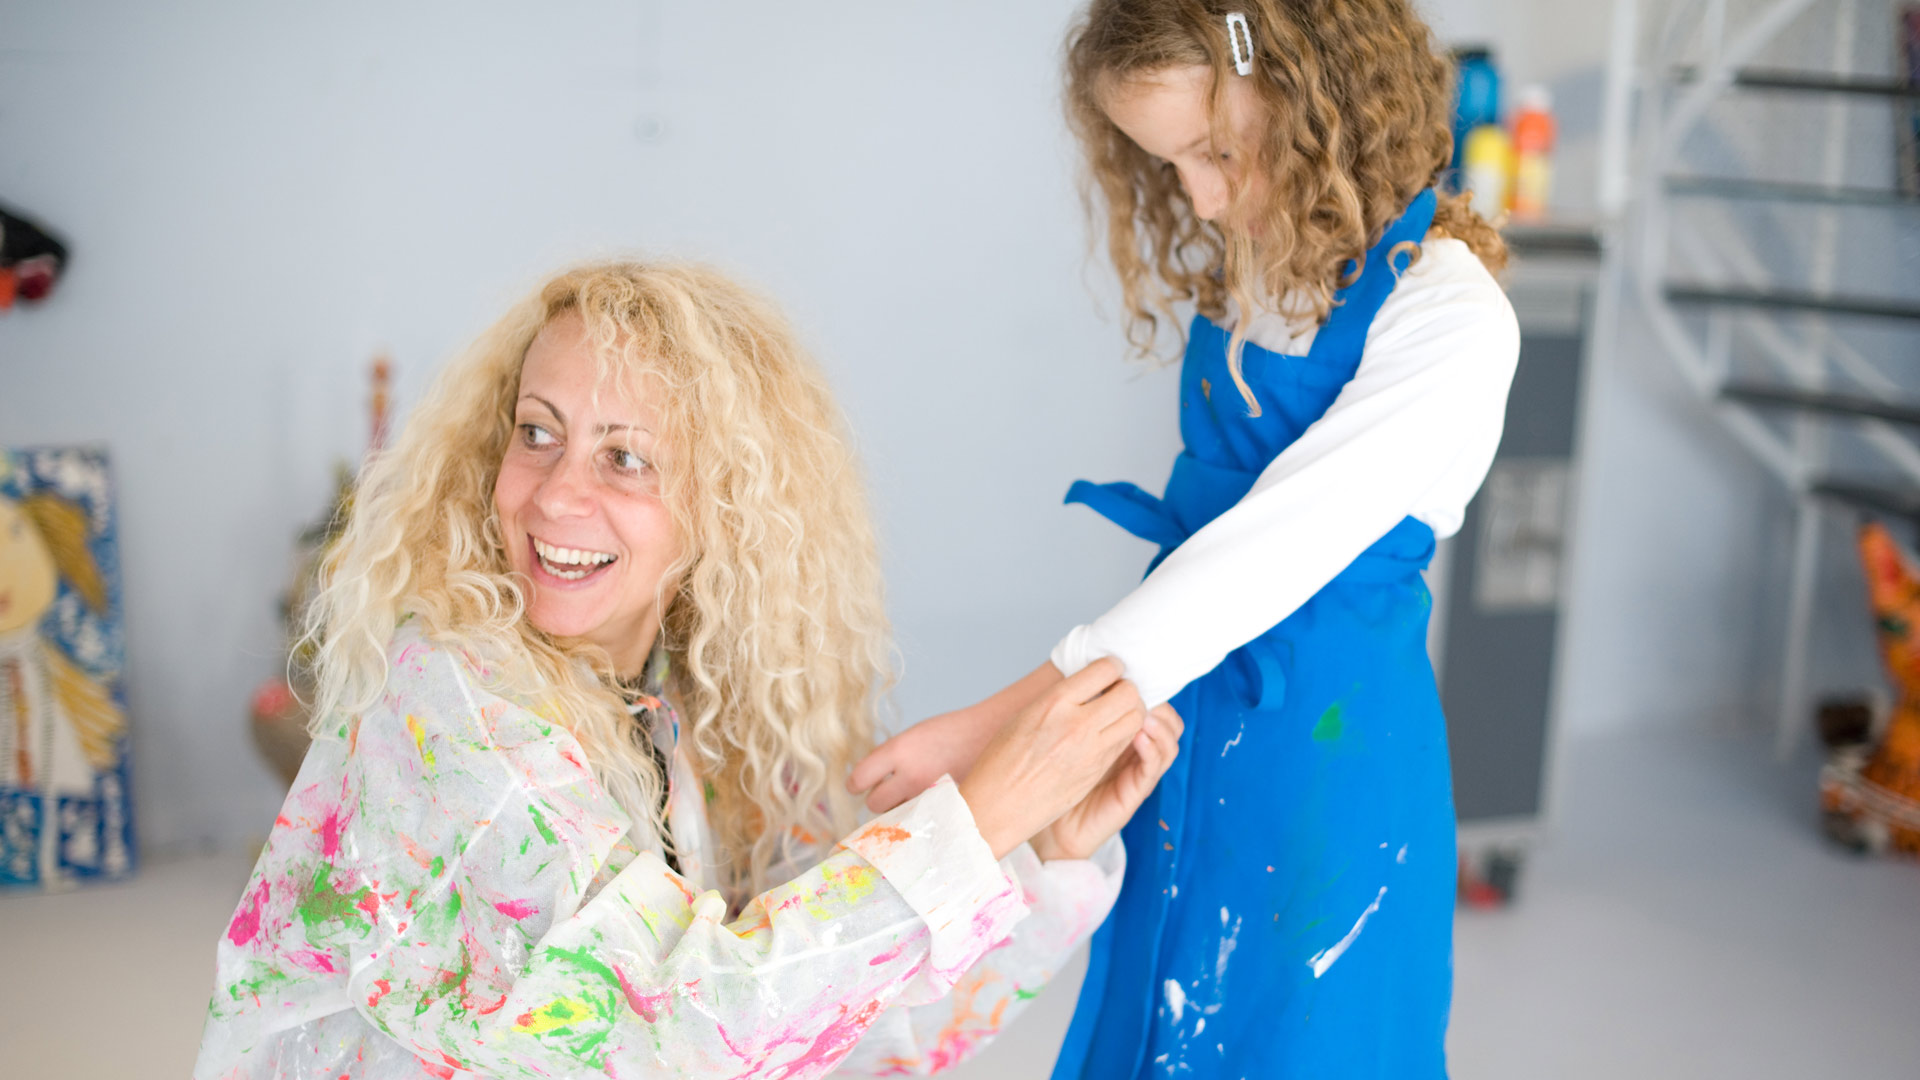 Elena Janker helps a little girl roll up her sleeve.